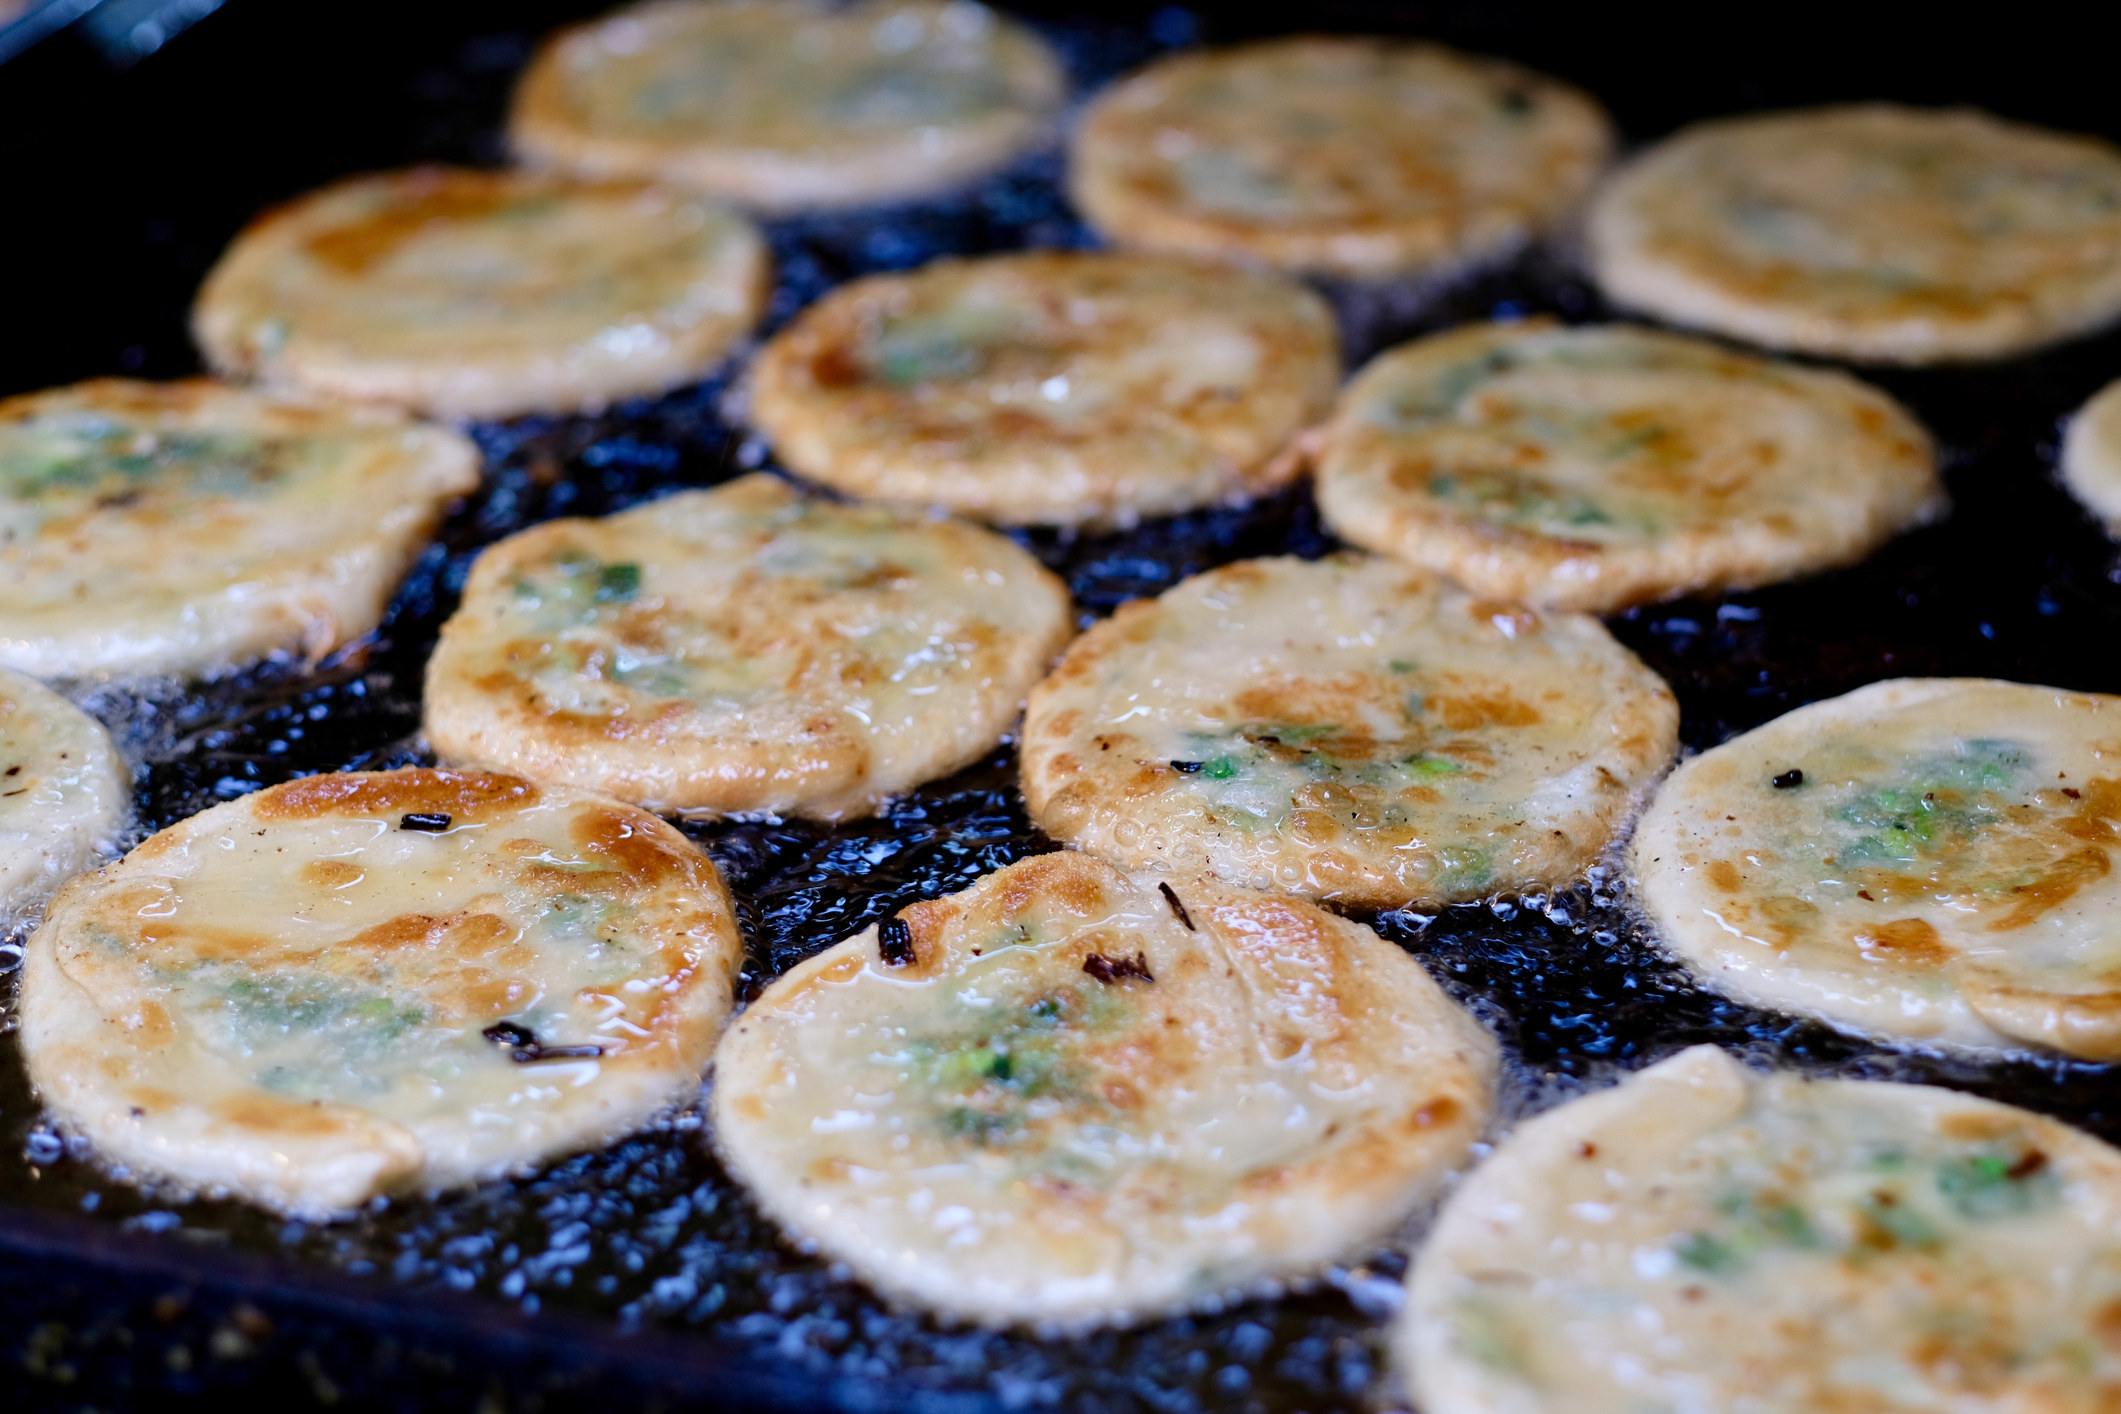 Rows of scallion pancakes fry in oil on a hot pan